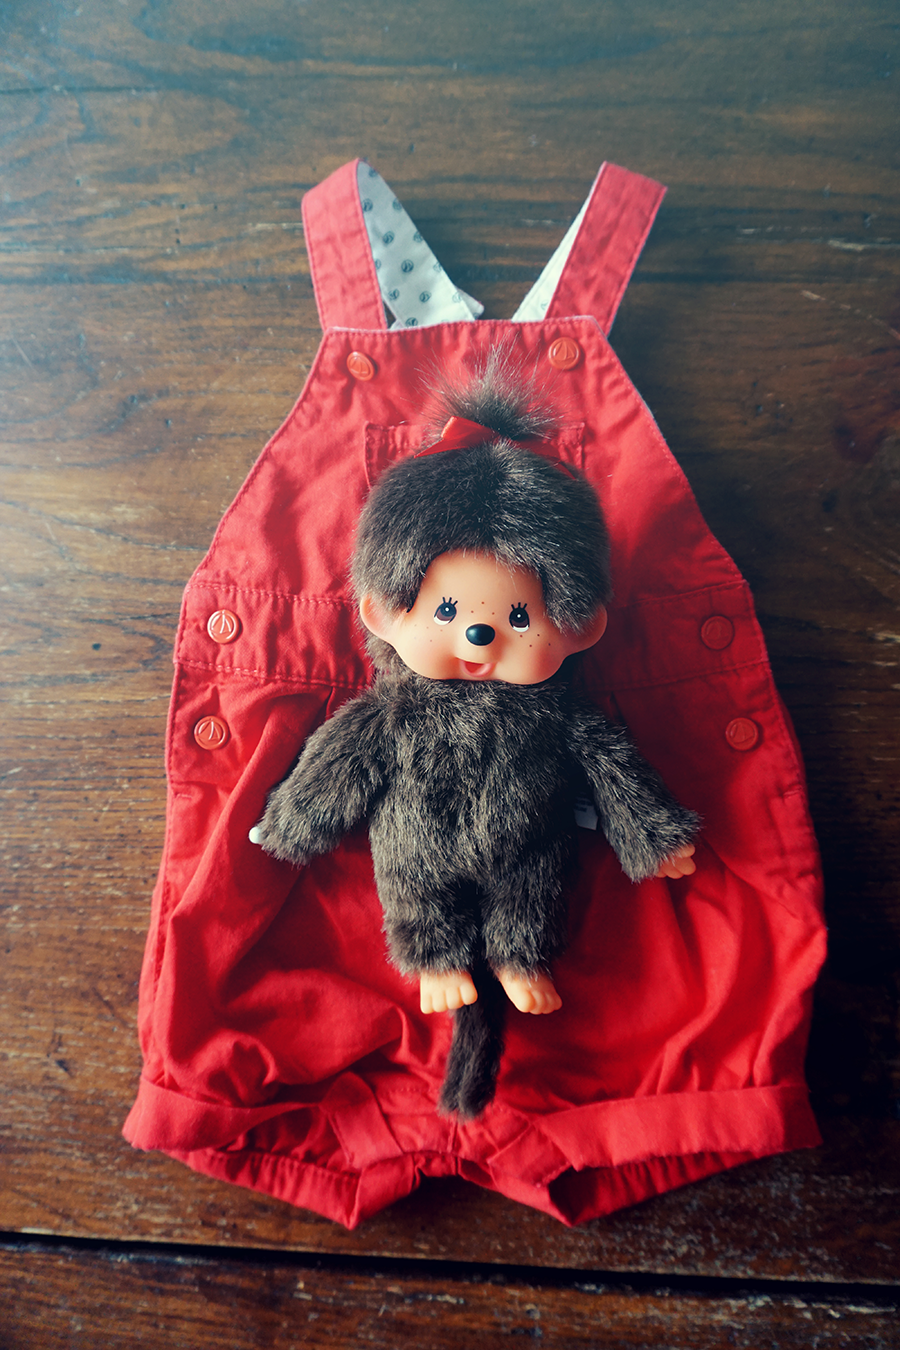 maybeyoulike_baby_outfit_red_4